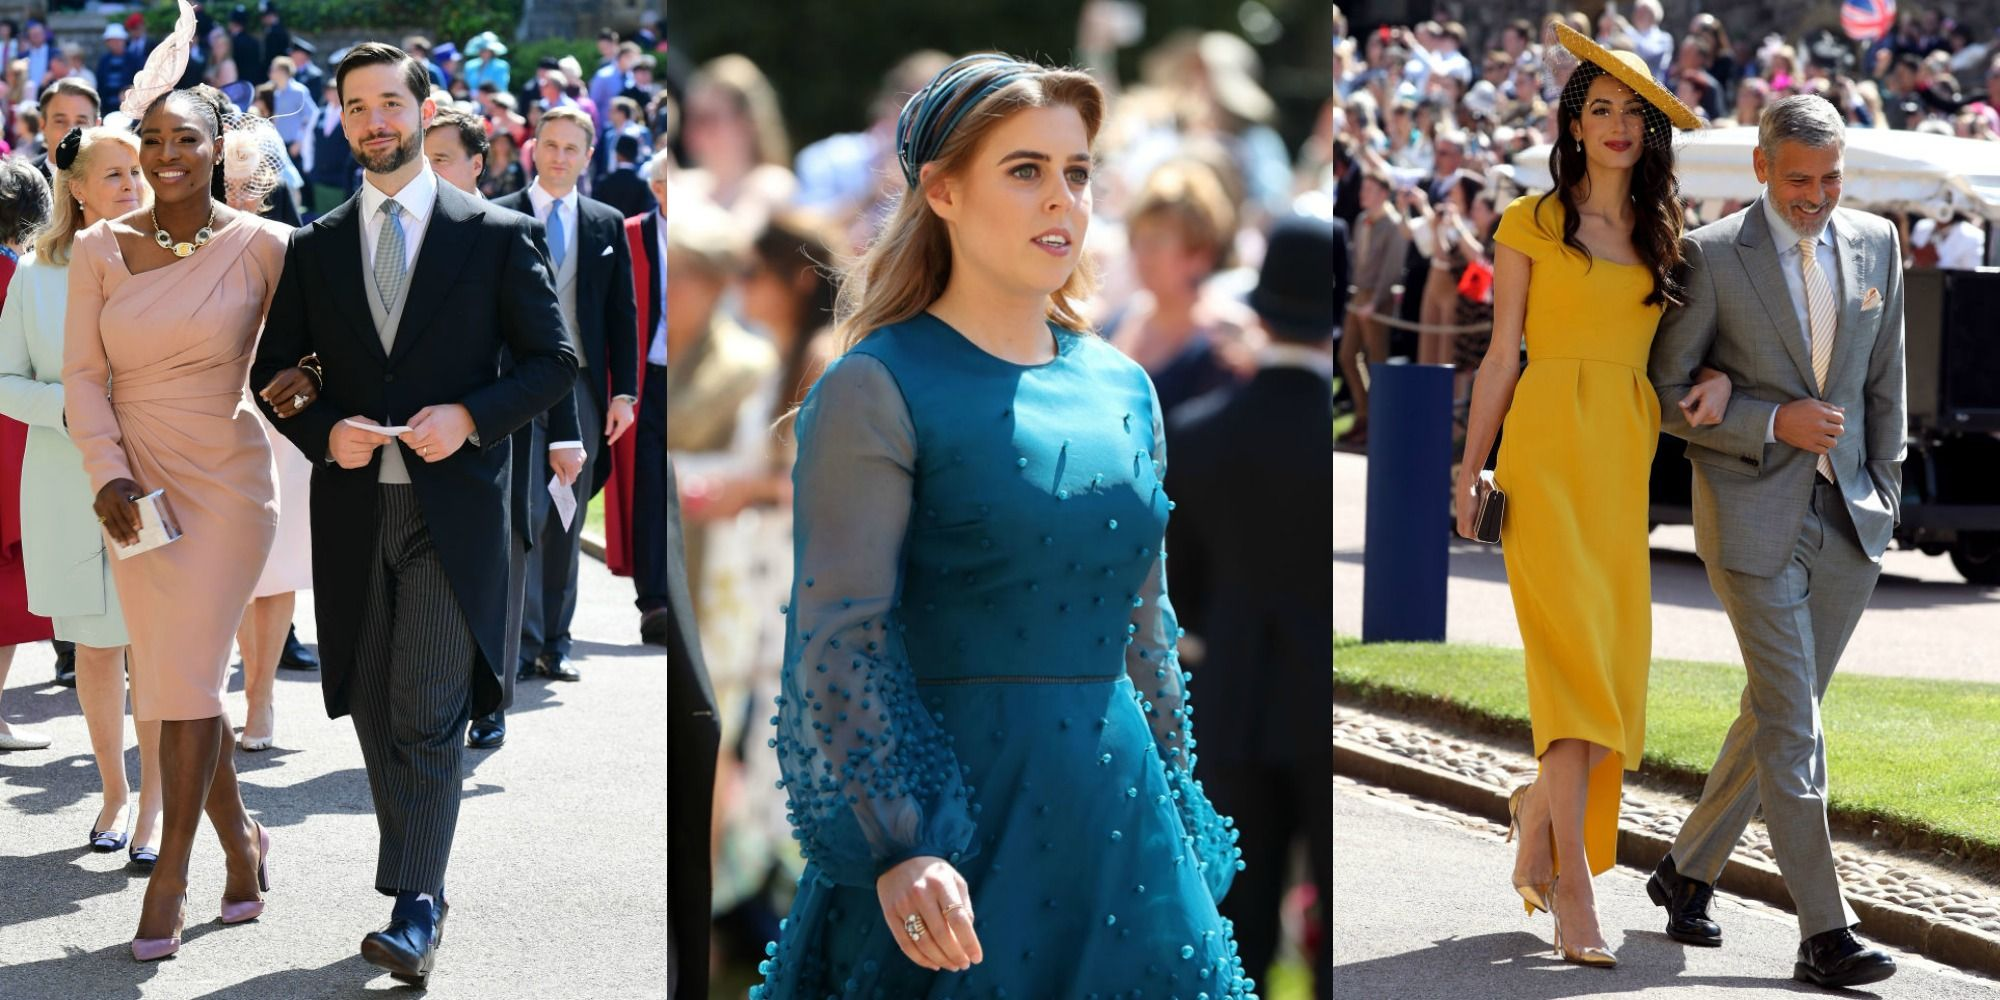 Royal Wedding 2018 Celebrity Guest List Famous Guests At The